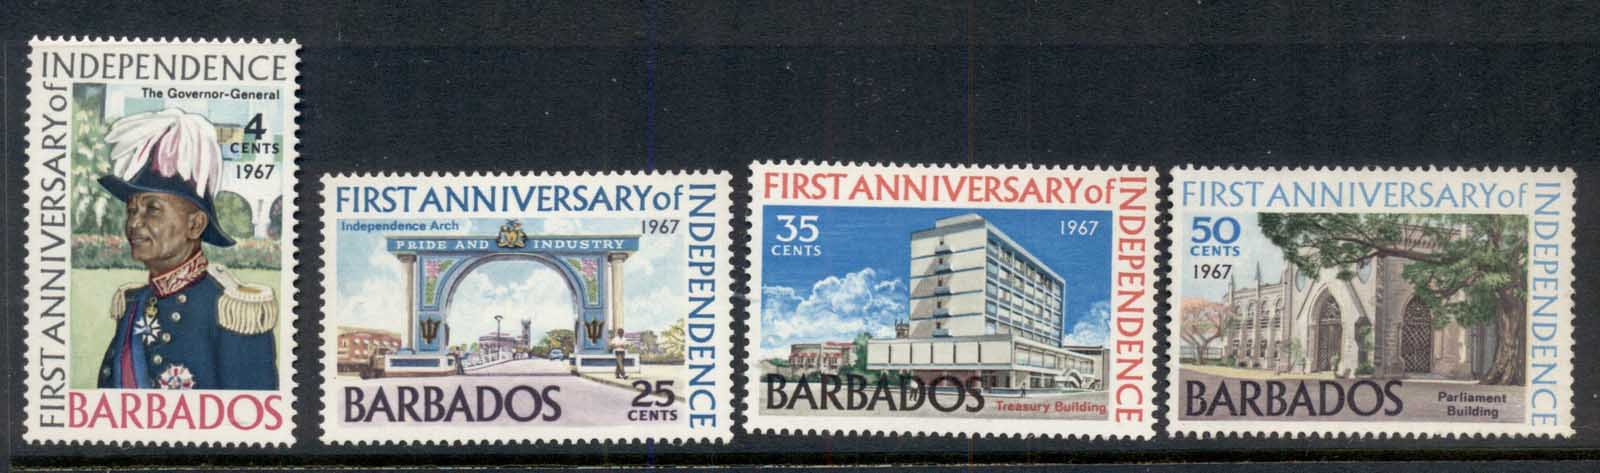 Barbados 1967 Independence 1st Anniv. MLH